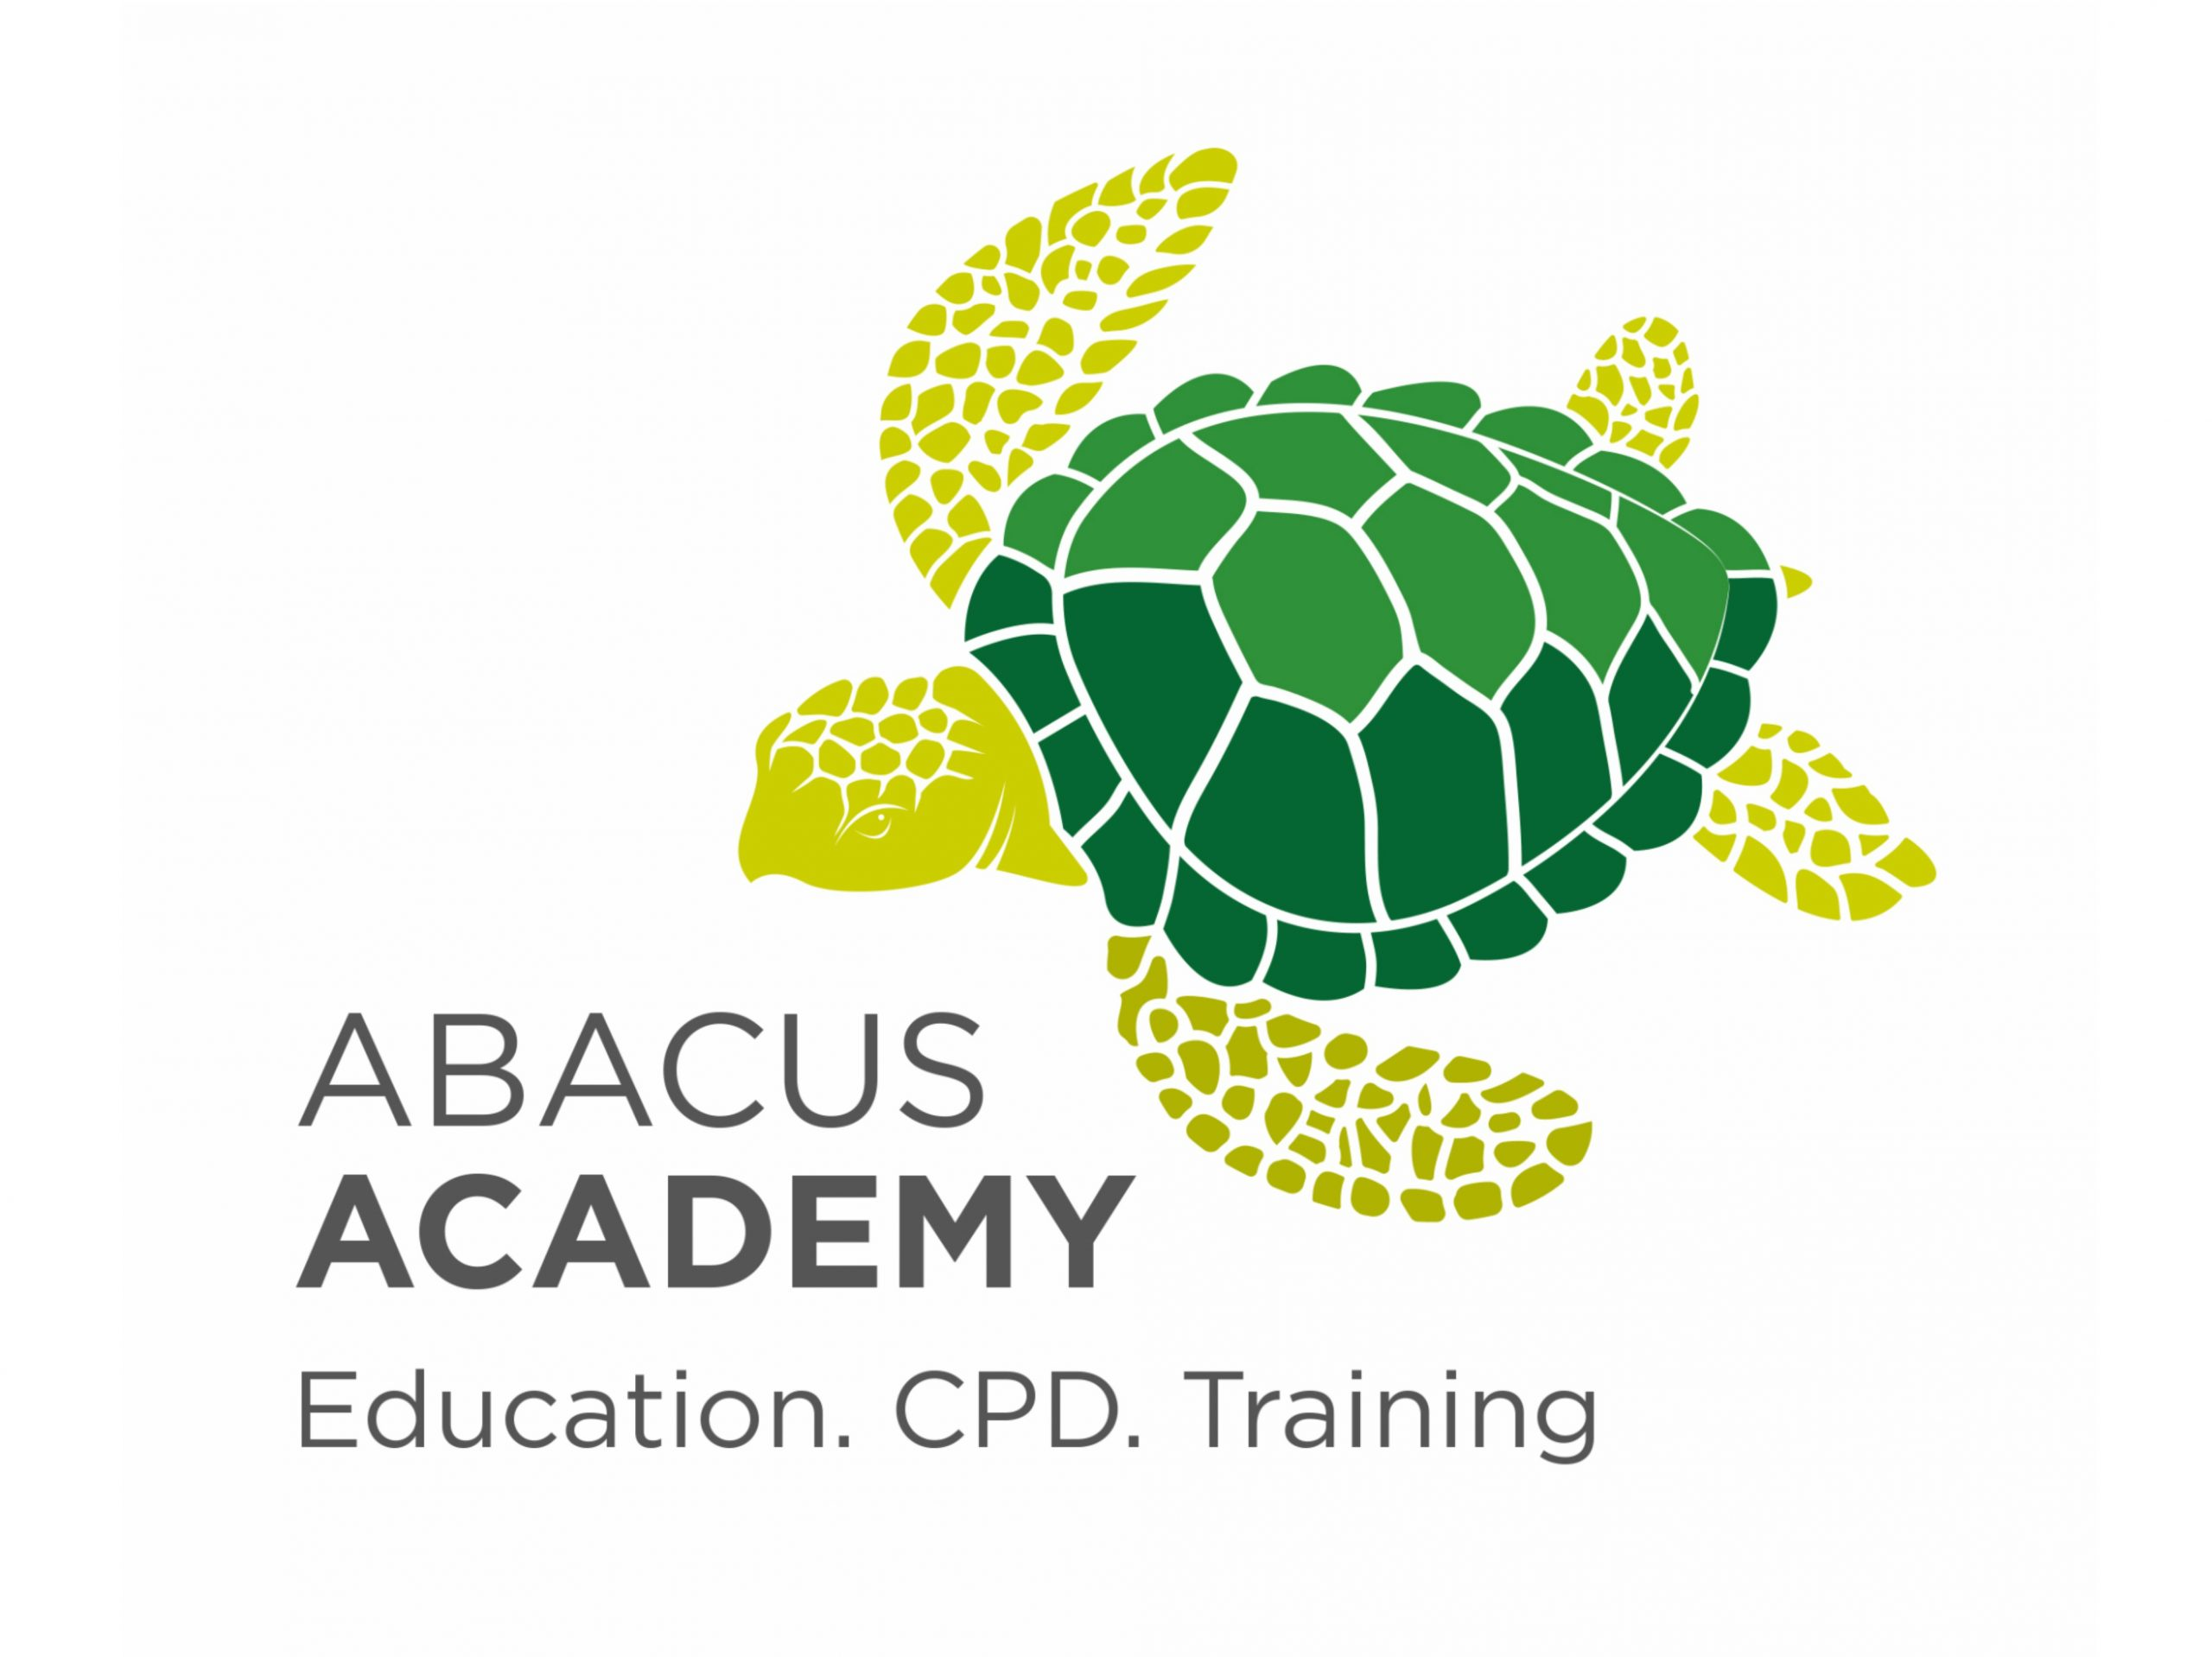 Abacus Academy to Launch for Latest CPD Healthcare Professional Education